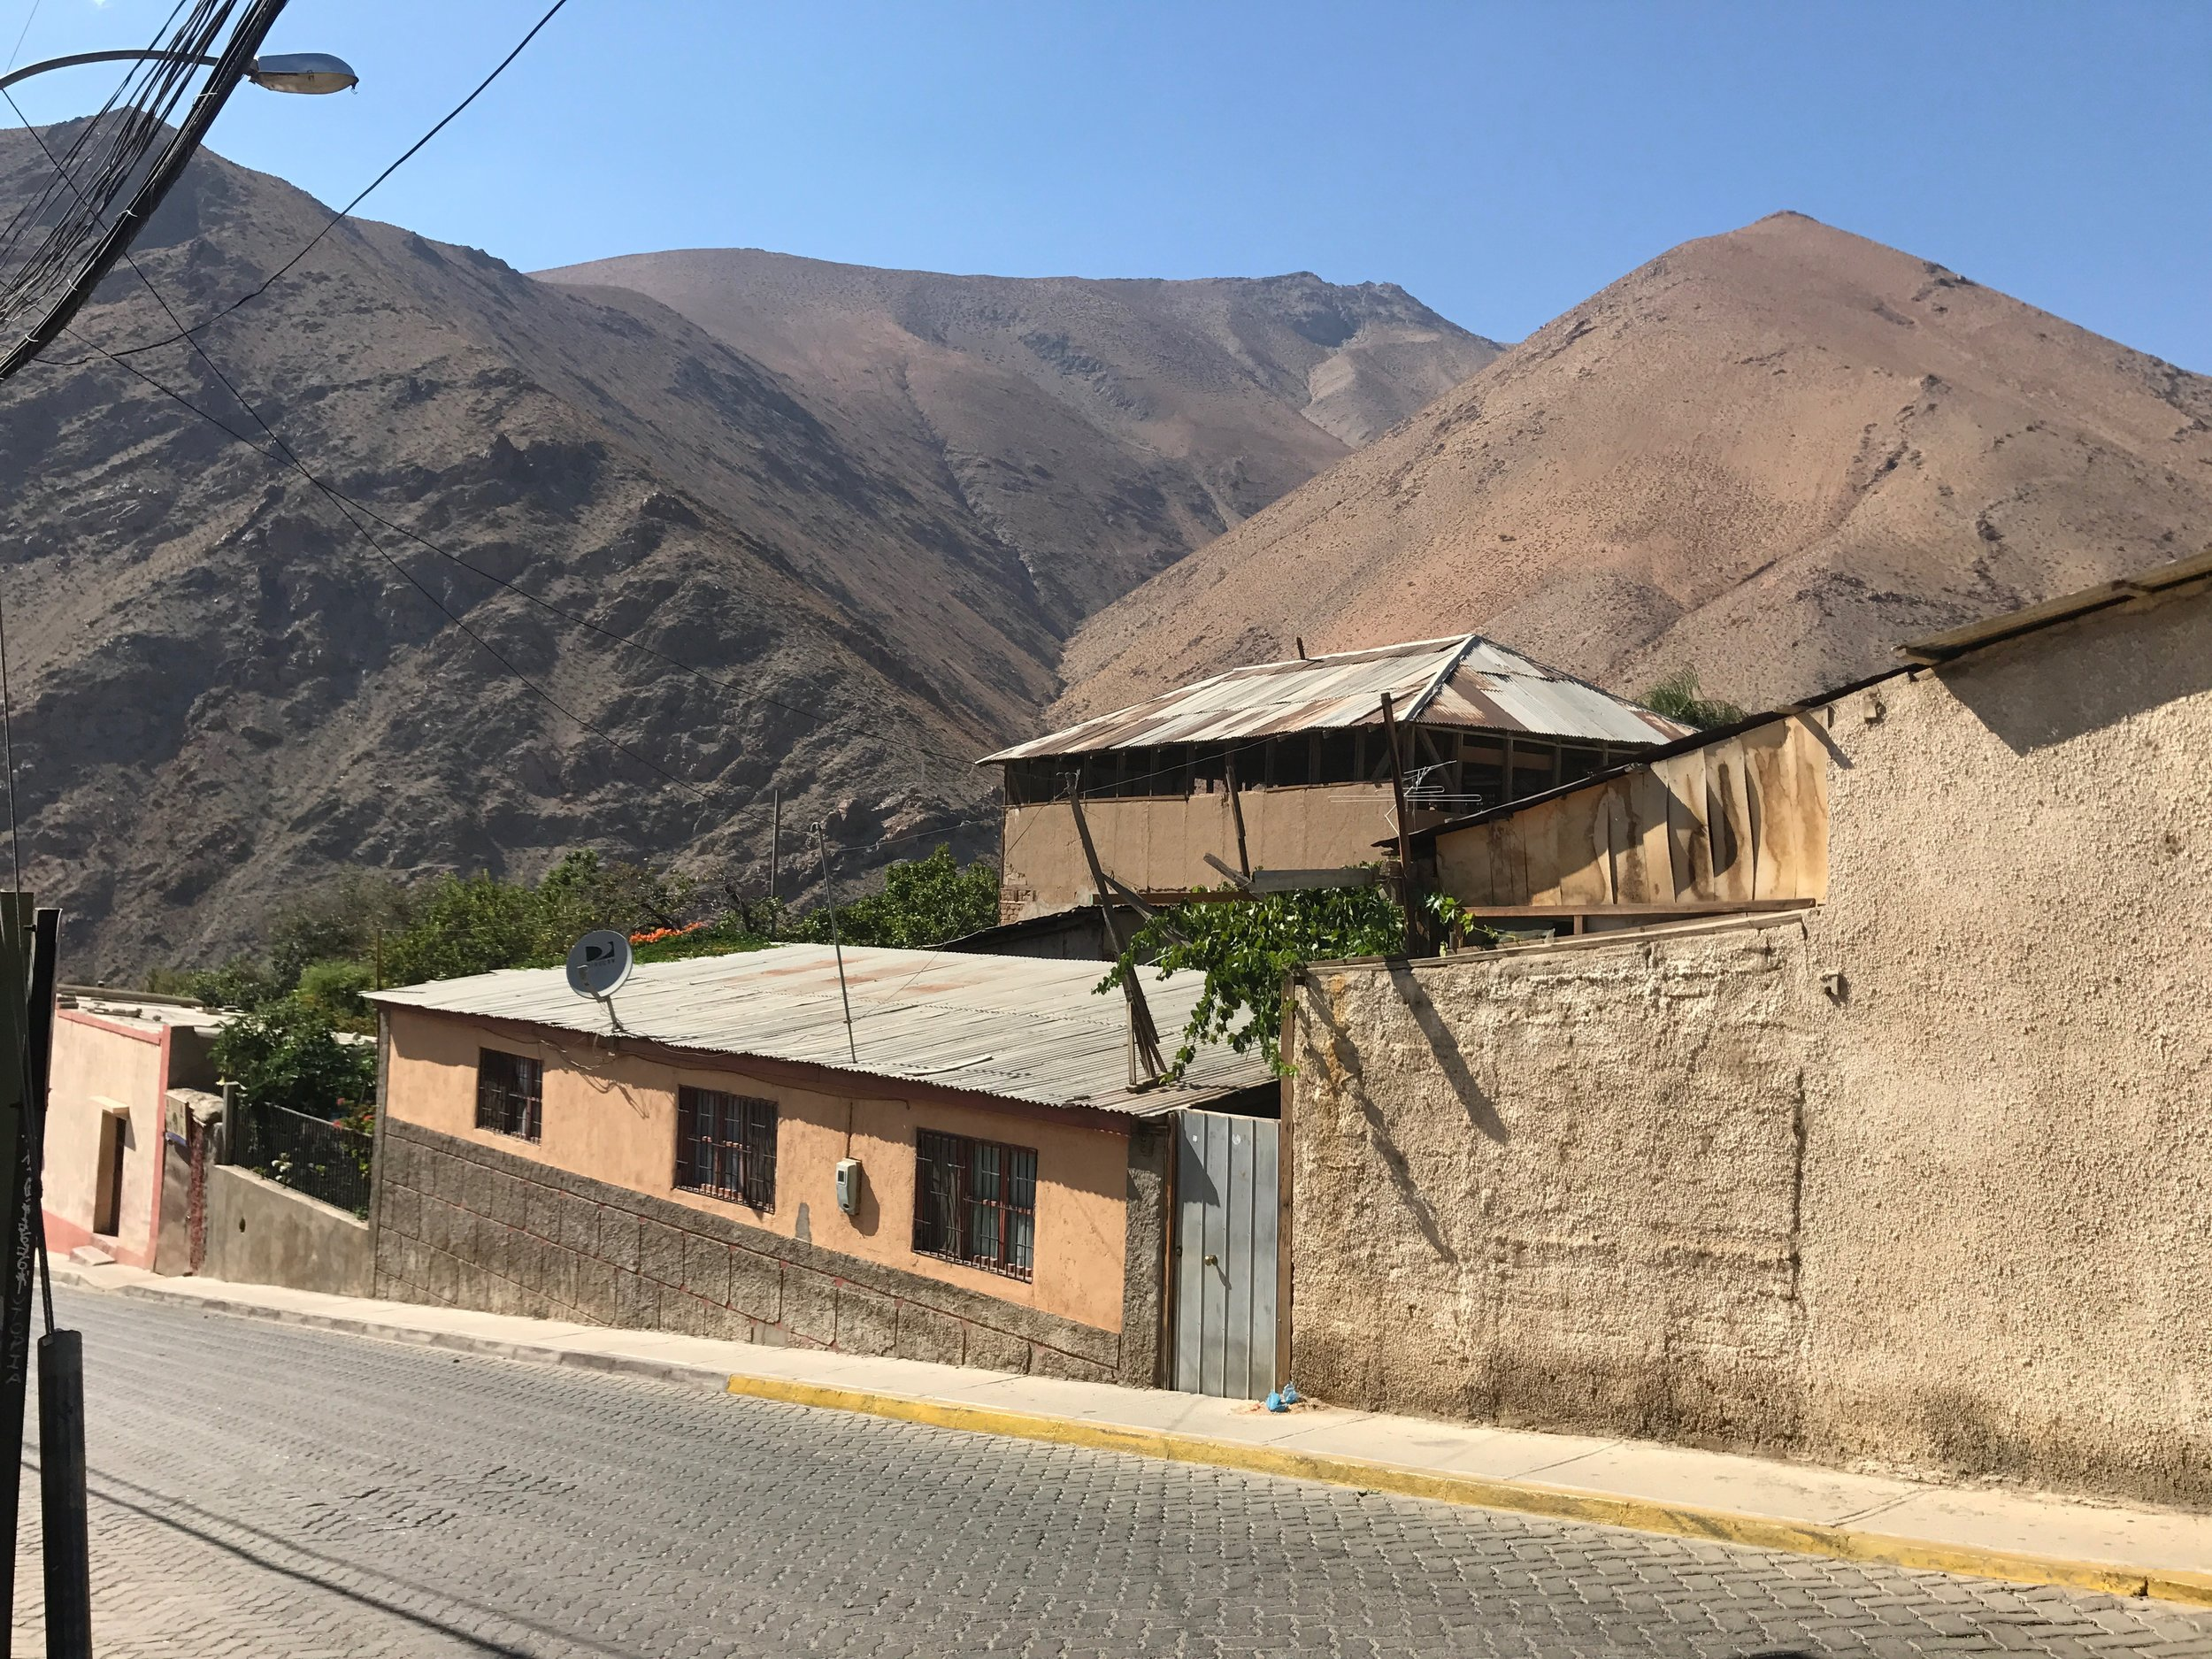 I have visited the Valley of Elqui in March of 2017, and it was truly magical.